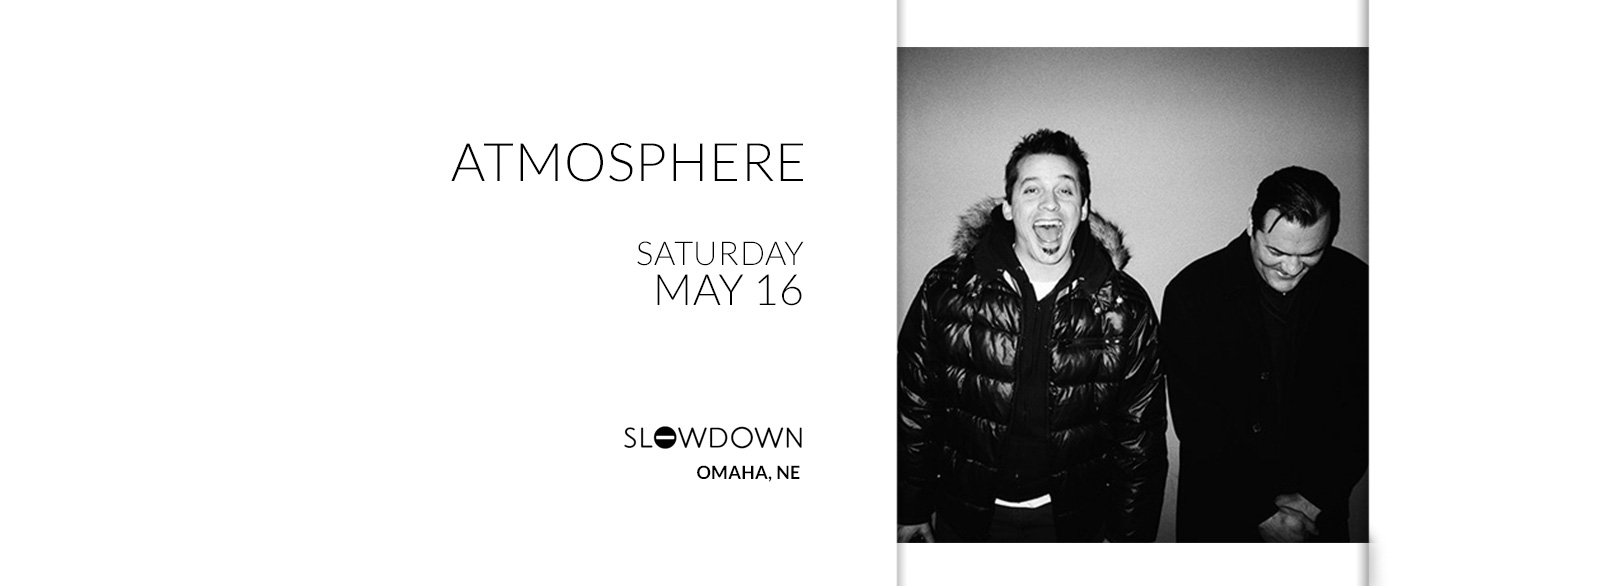 Atmosphere @ Slowdown